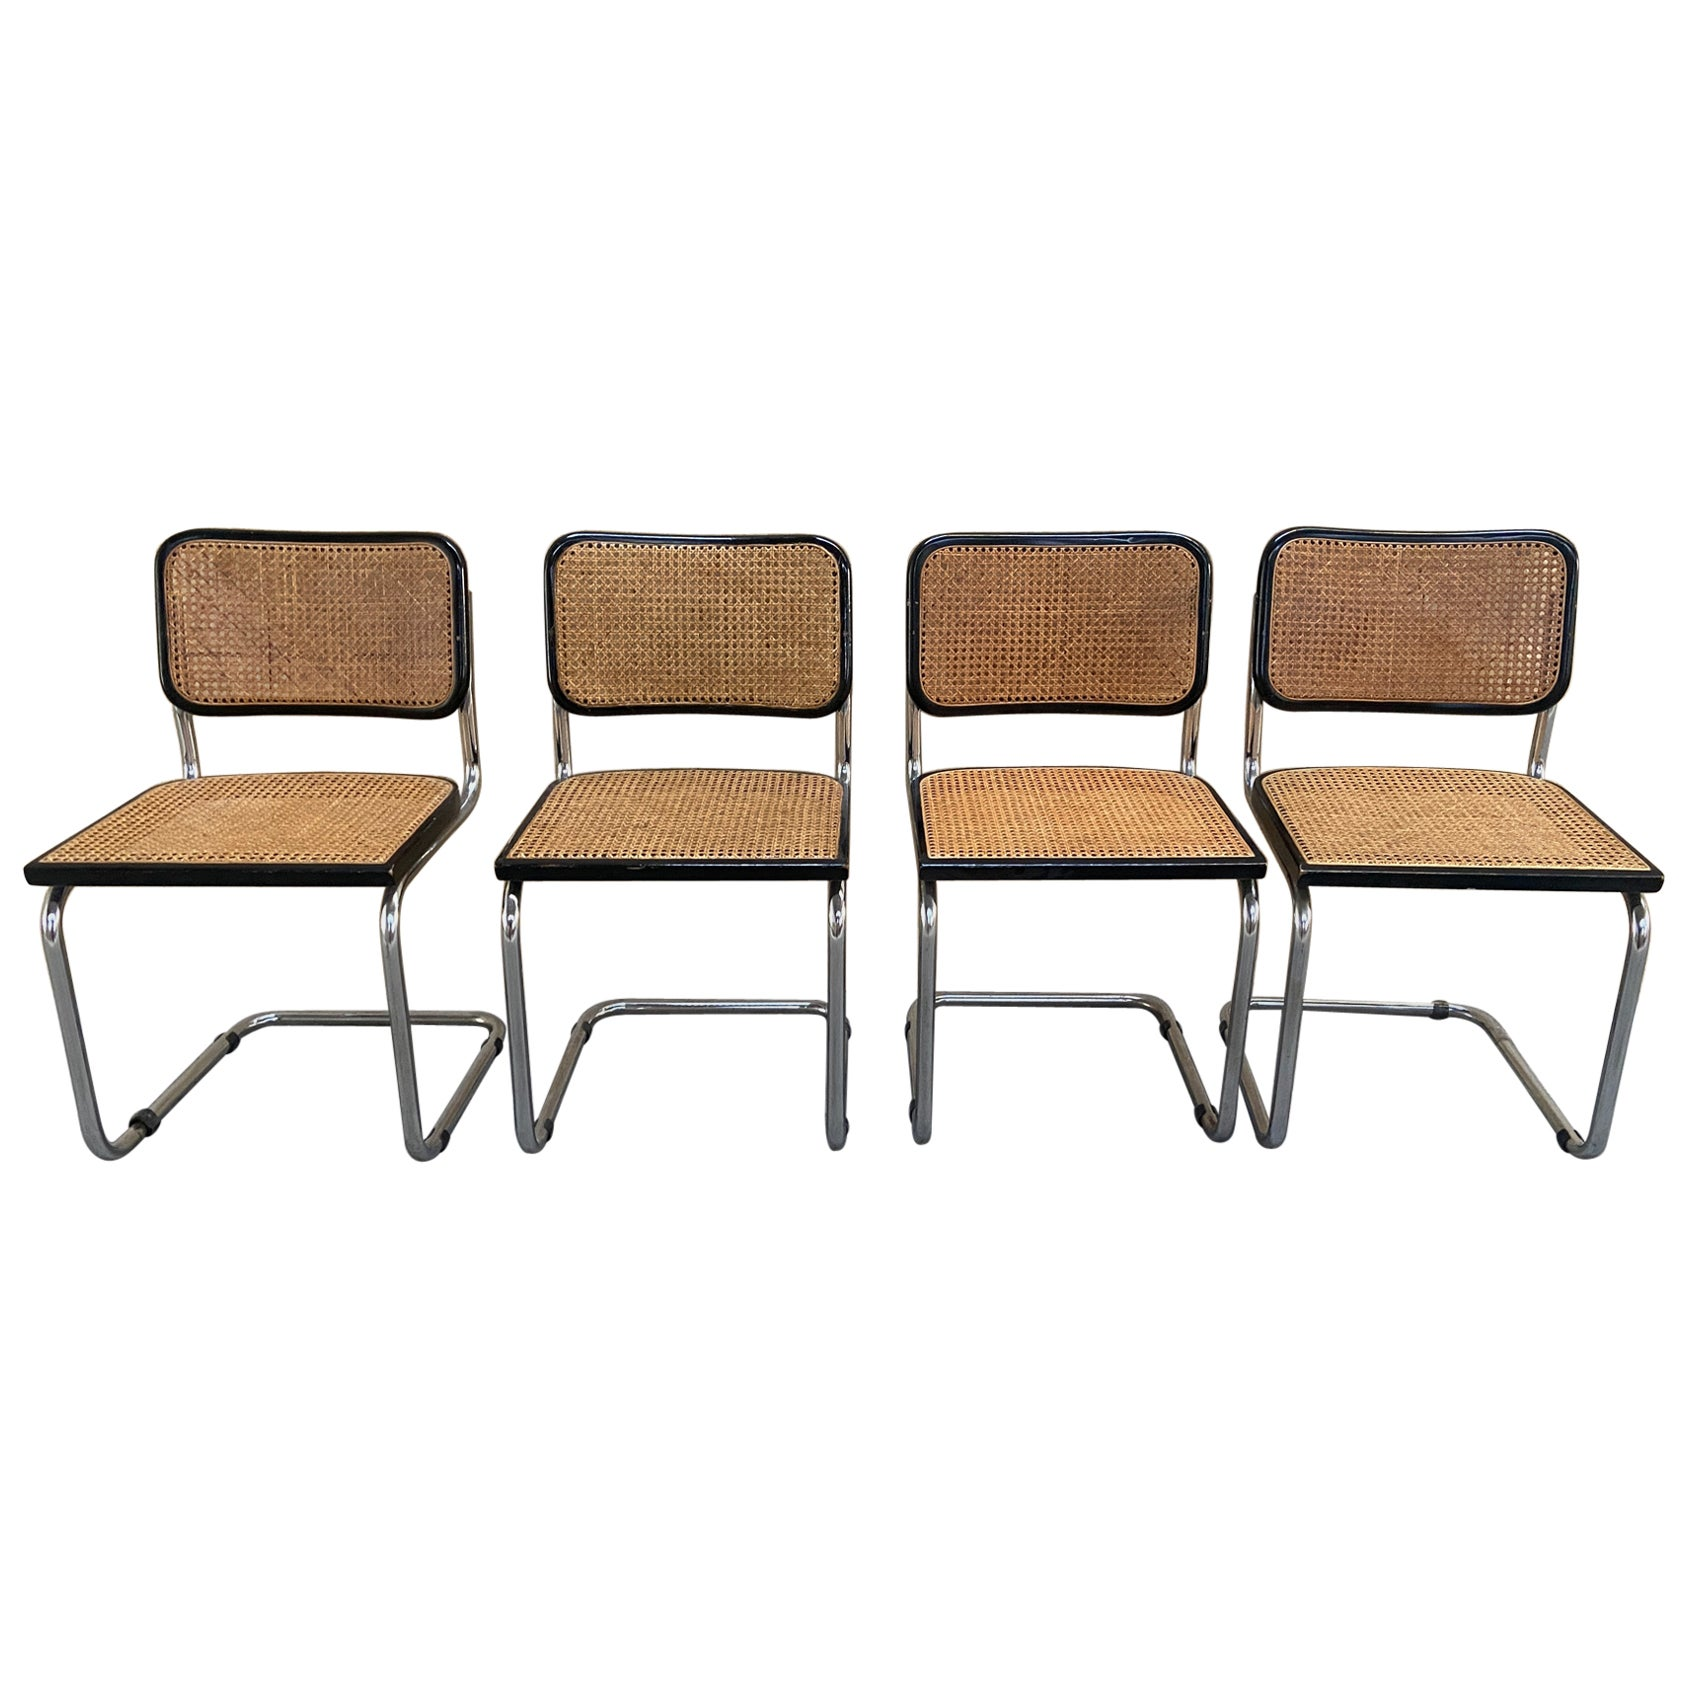 Mid-Century Modern Italian Set of Cesca Chairs by Marcel Breuer, 1970s